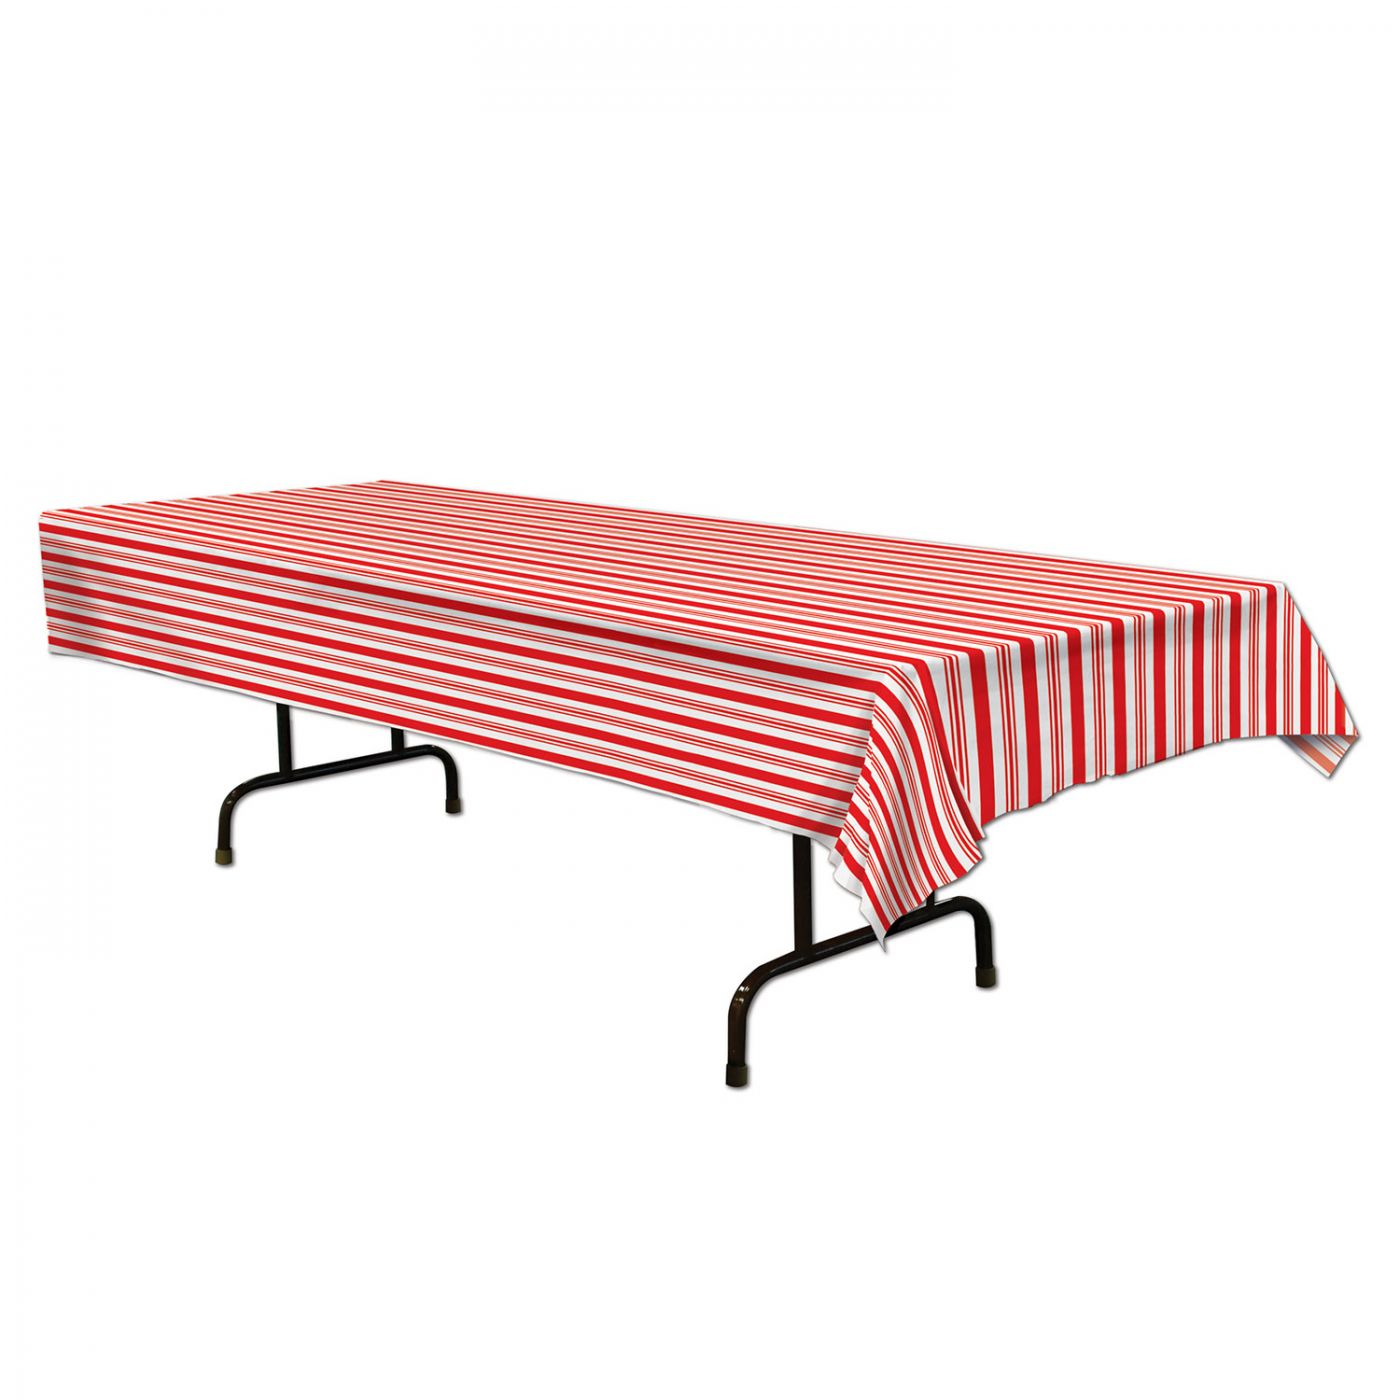 Striped Tablecover image